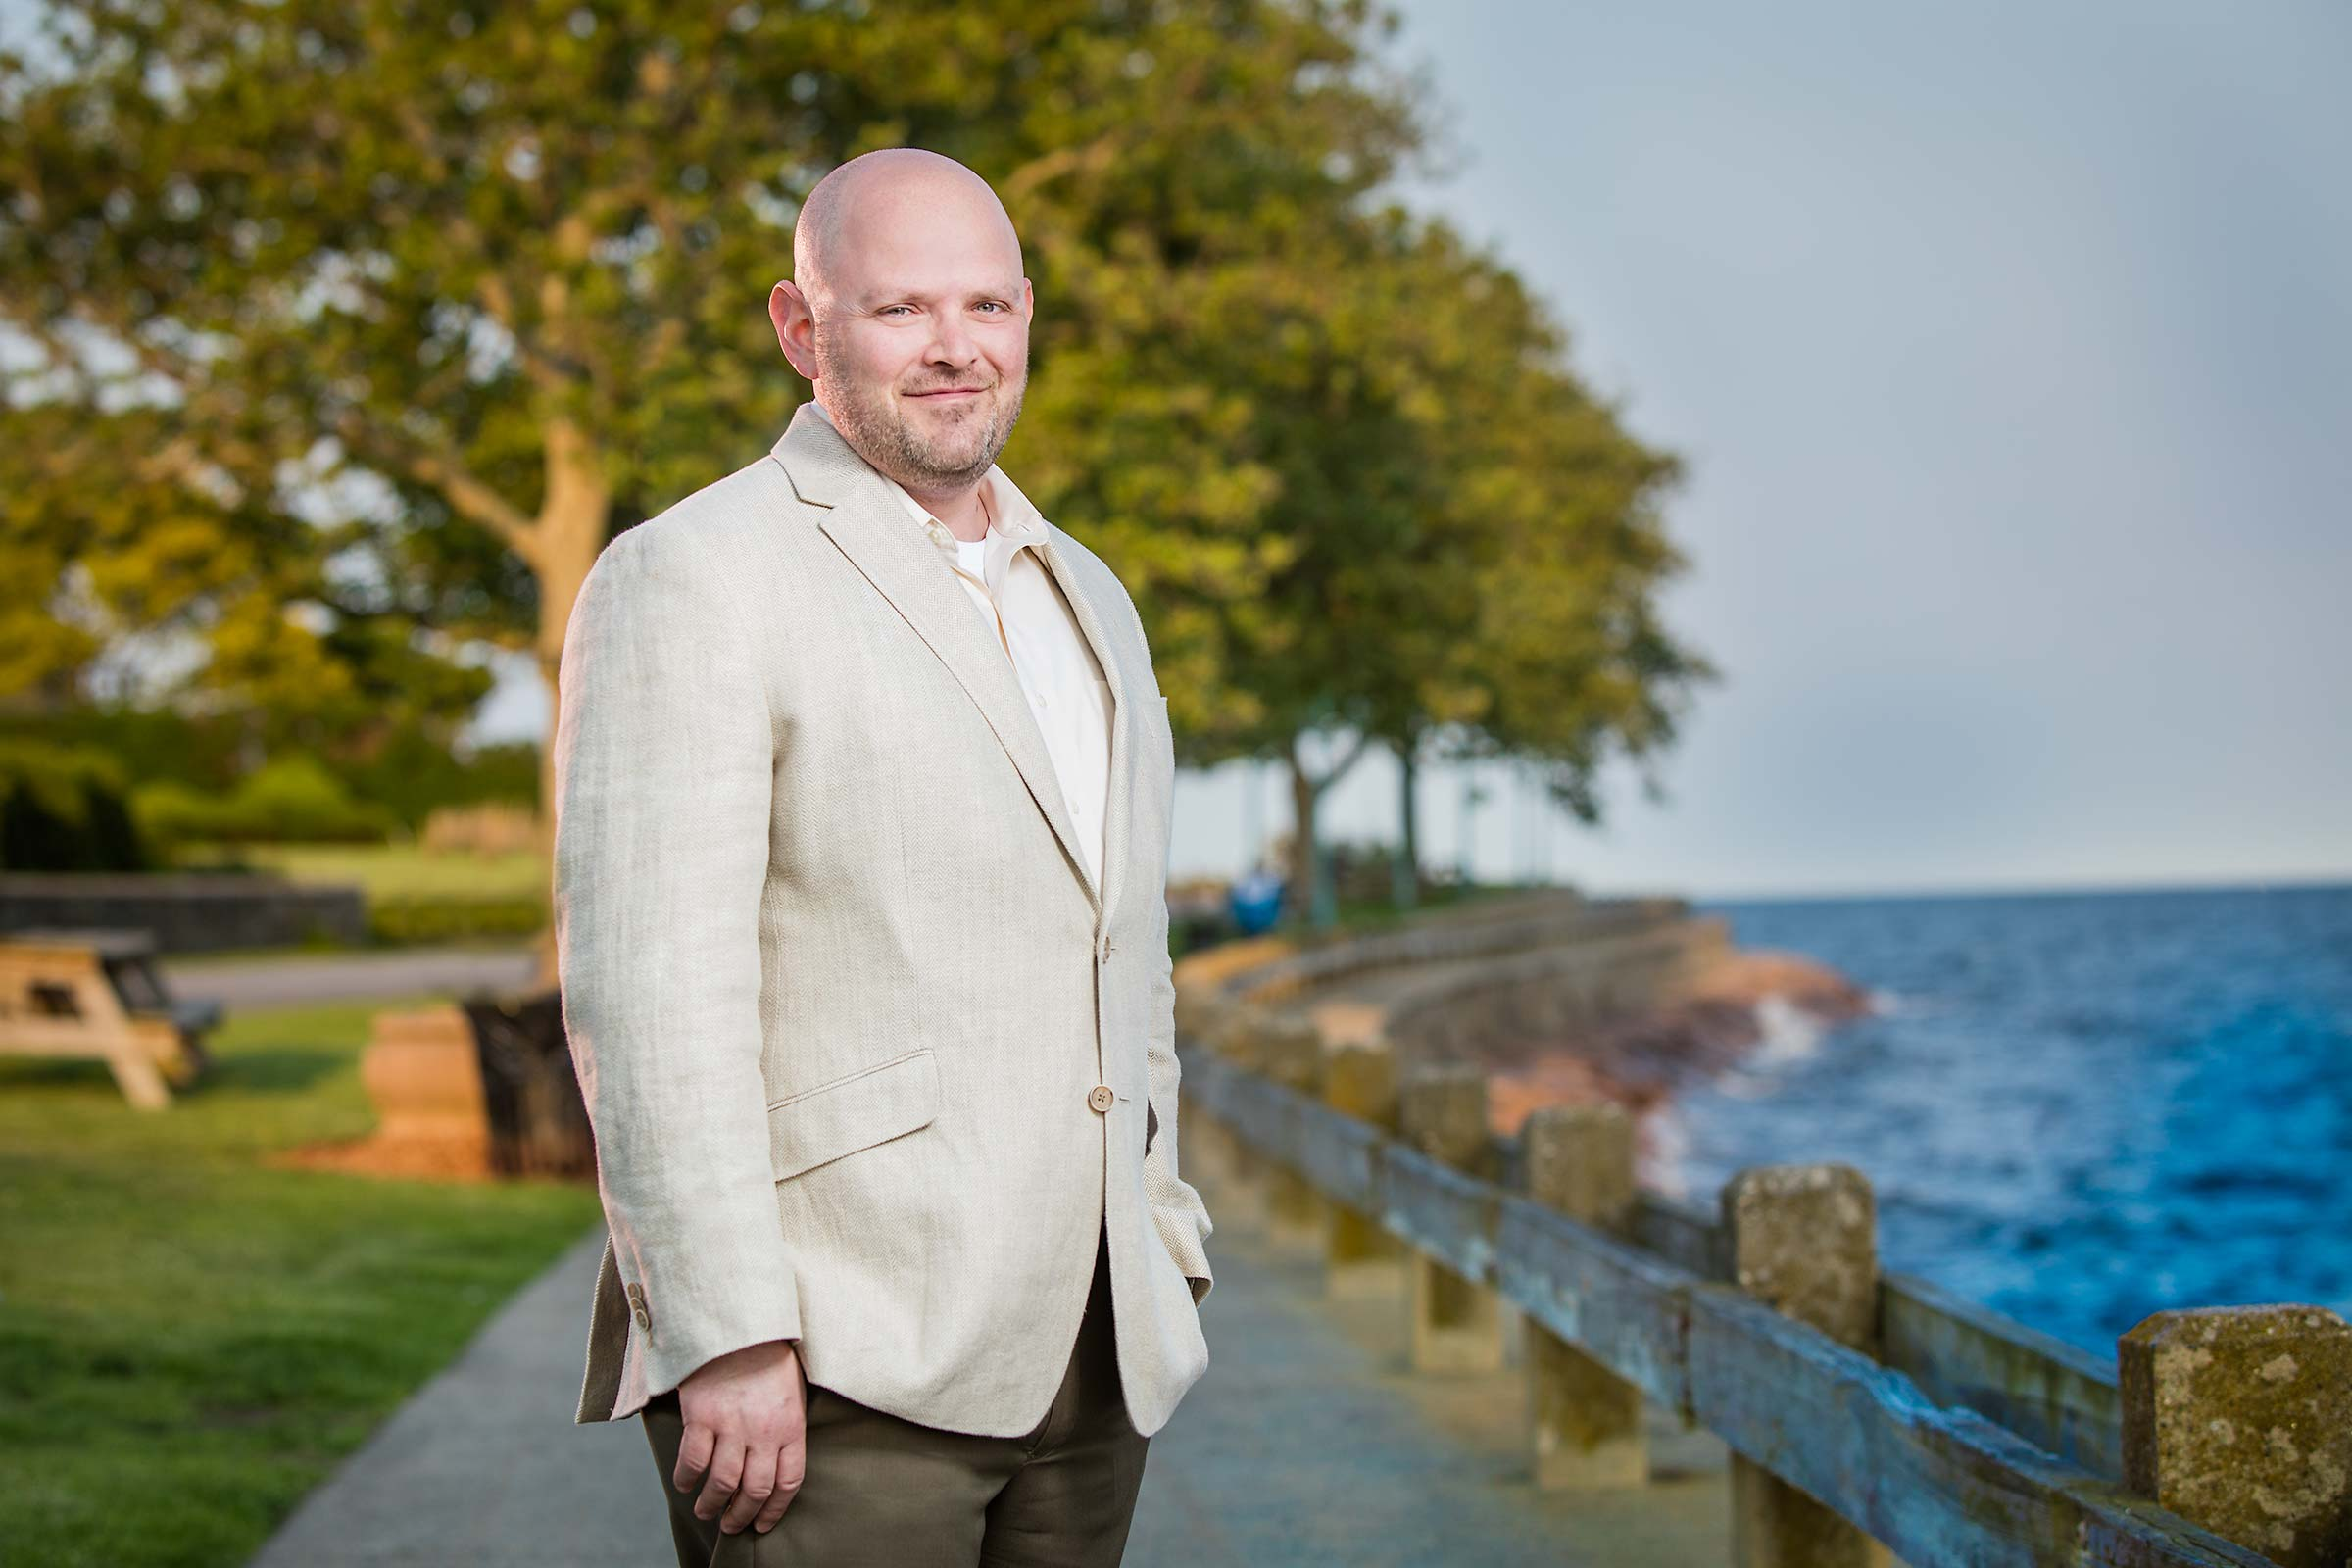 Casual outdoor portrait of municipal Technology Director near ocean in Connecticut